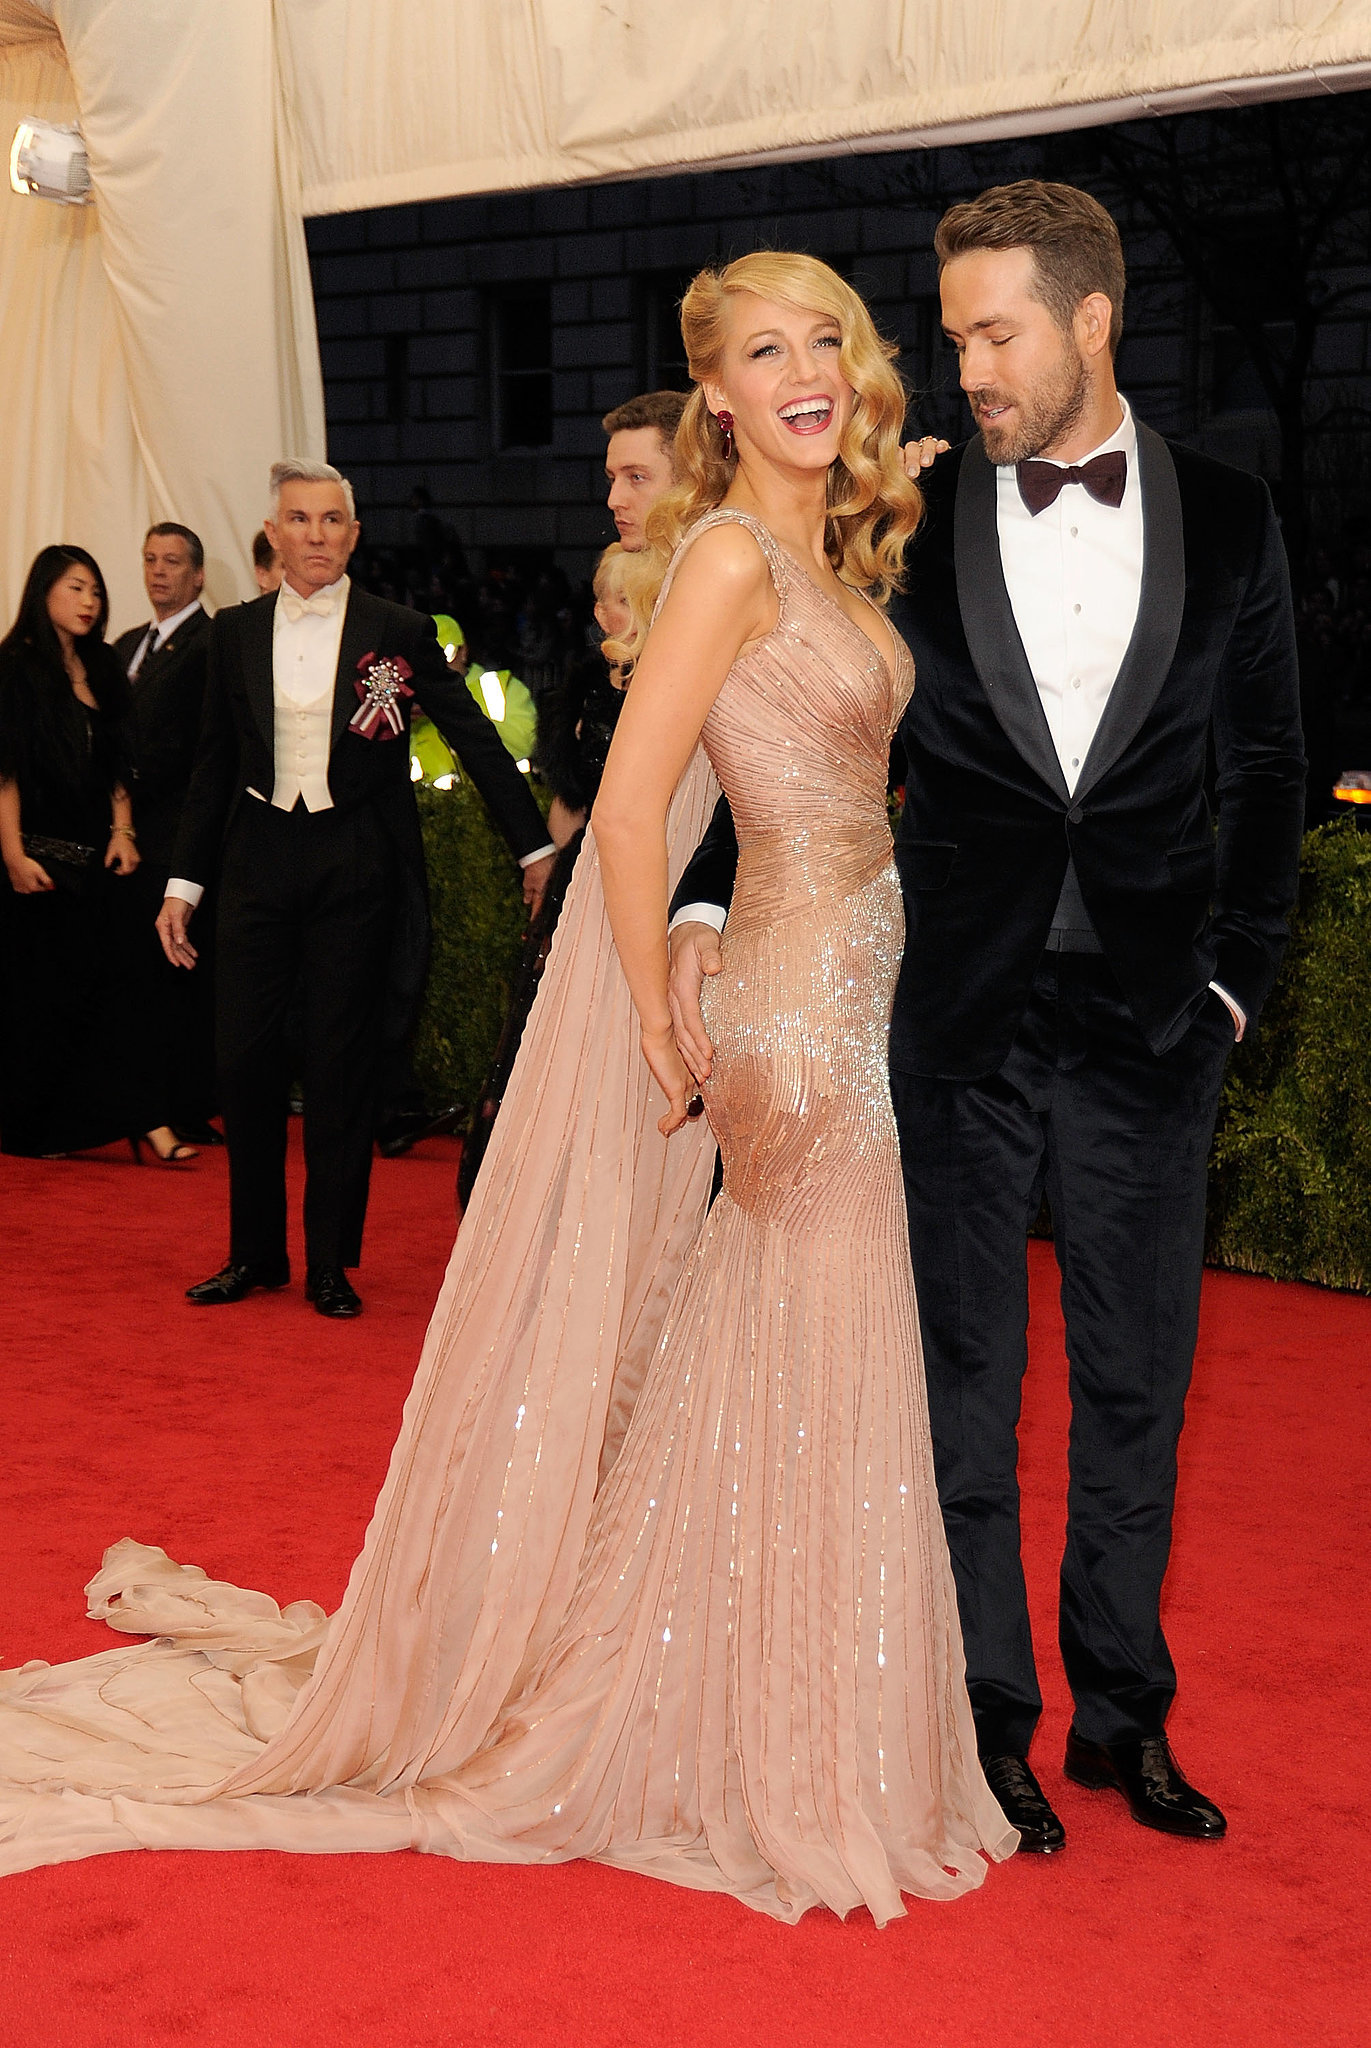 Ryan Reynolds joked with Blake Lively in front of photographer.